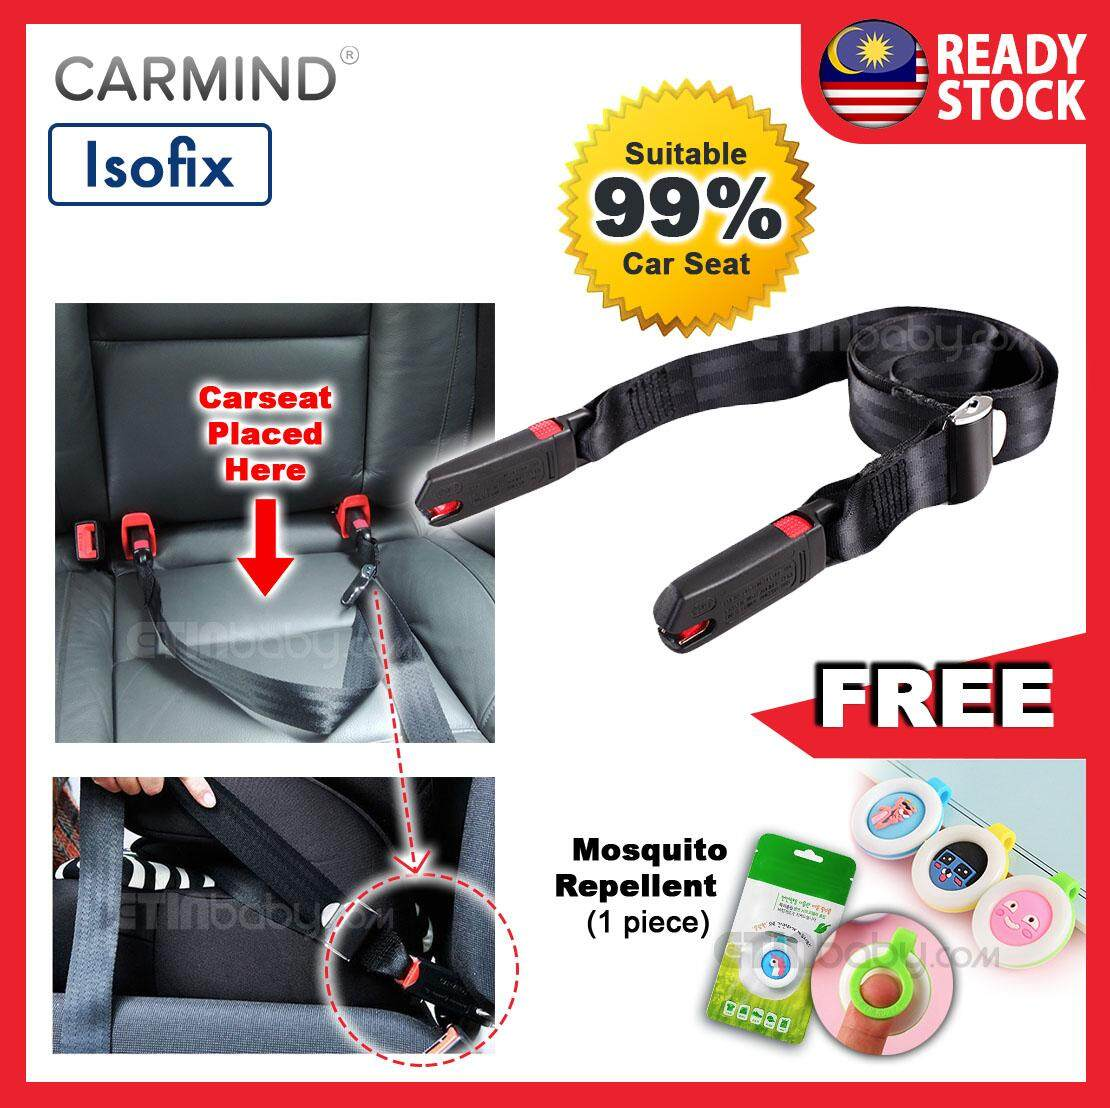 Carmind Car Seat Belt Isofix General Adjustable Connector Child Car Seat for Fixed Carseat image on snachetto.com